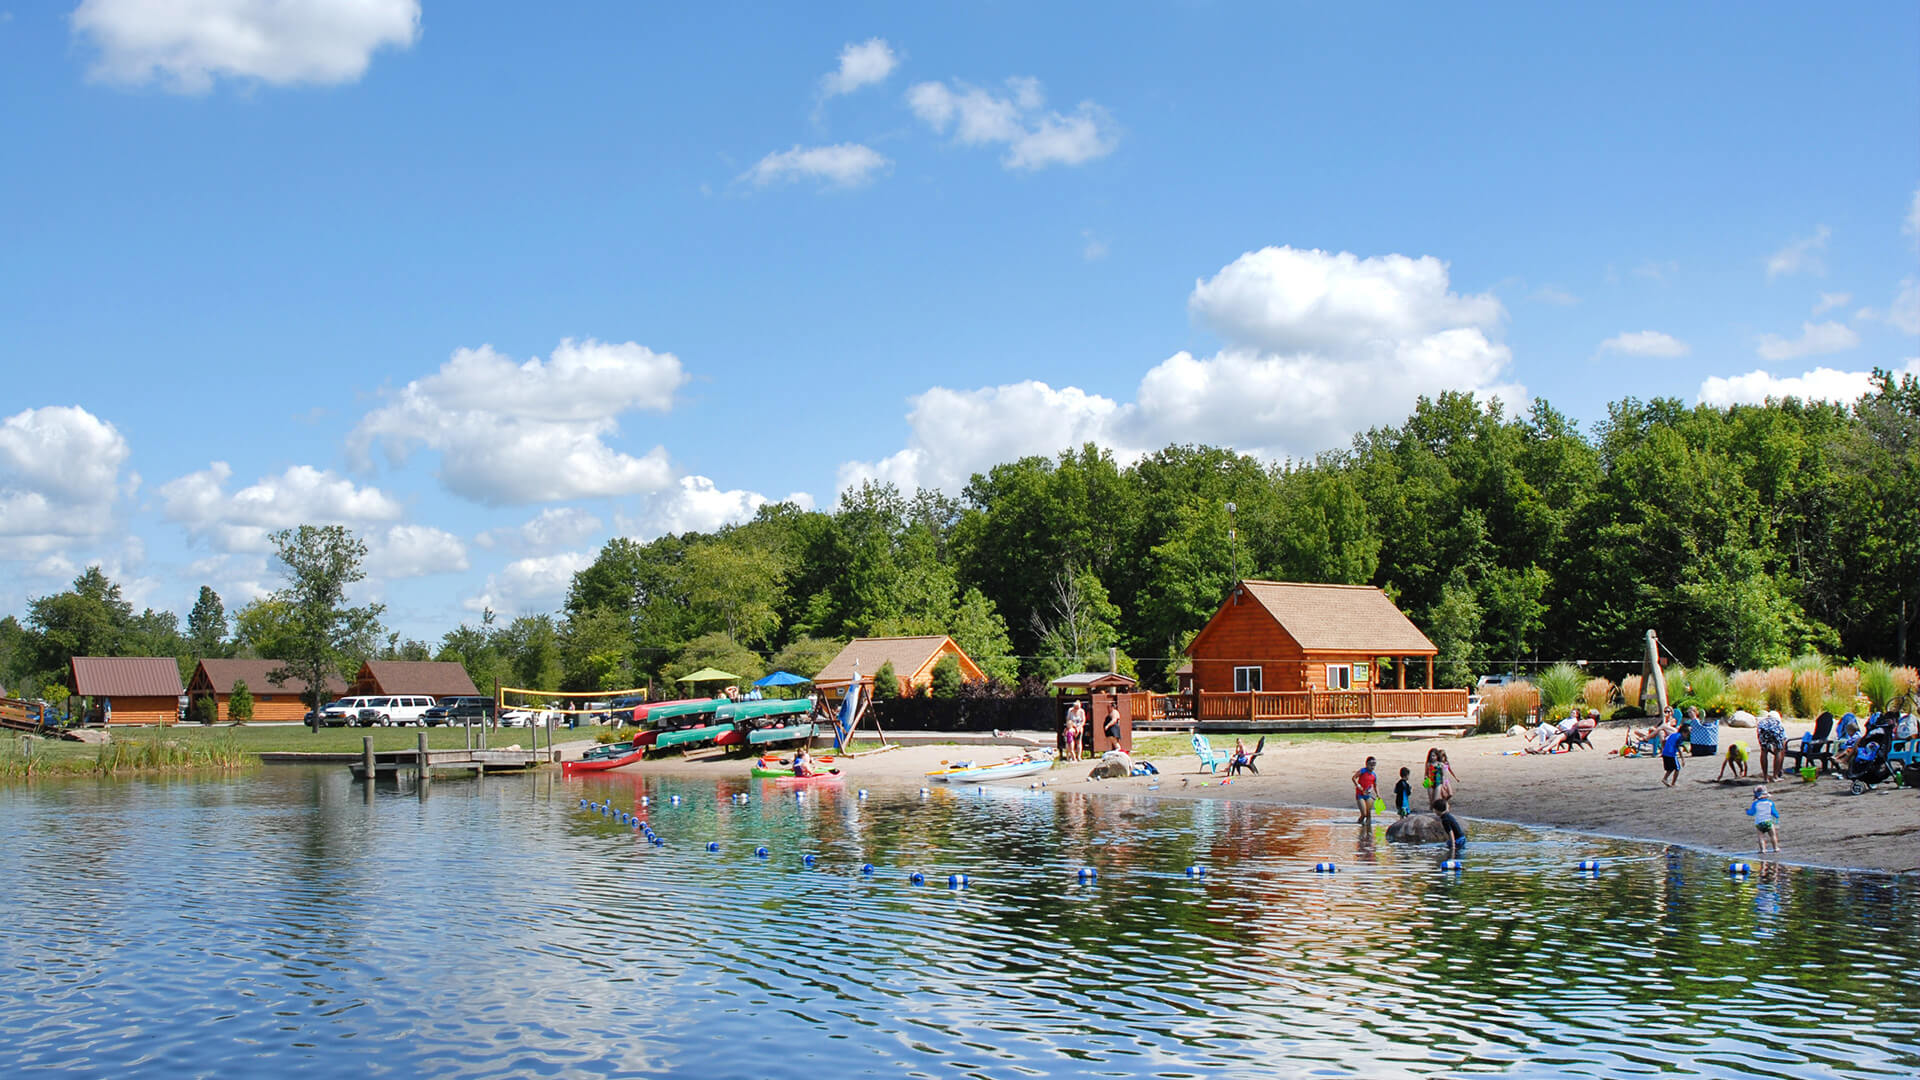 beach area for boating and swimming at Branches of Niagara Campground Resort, Grand Island, NY